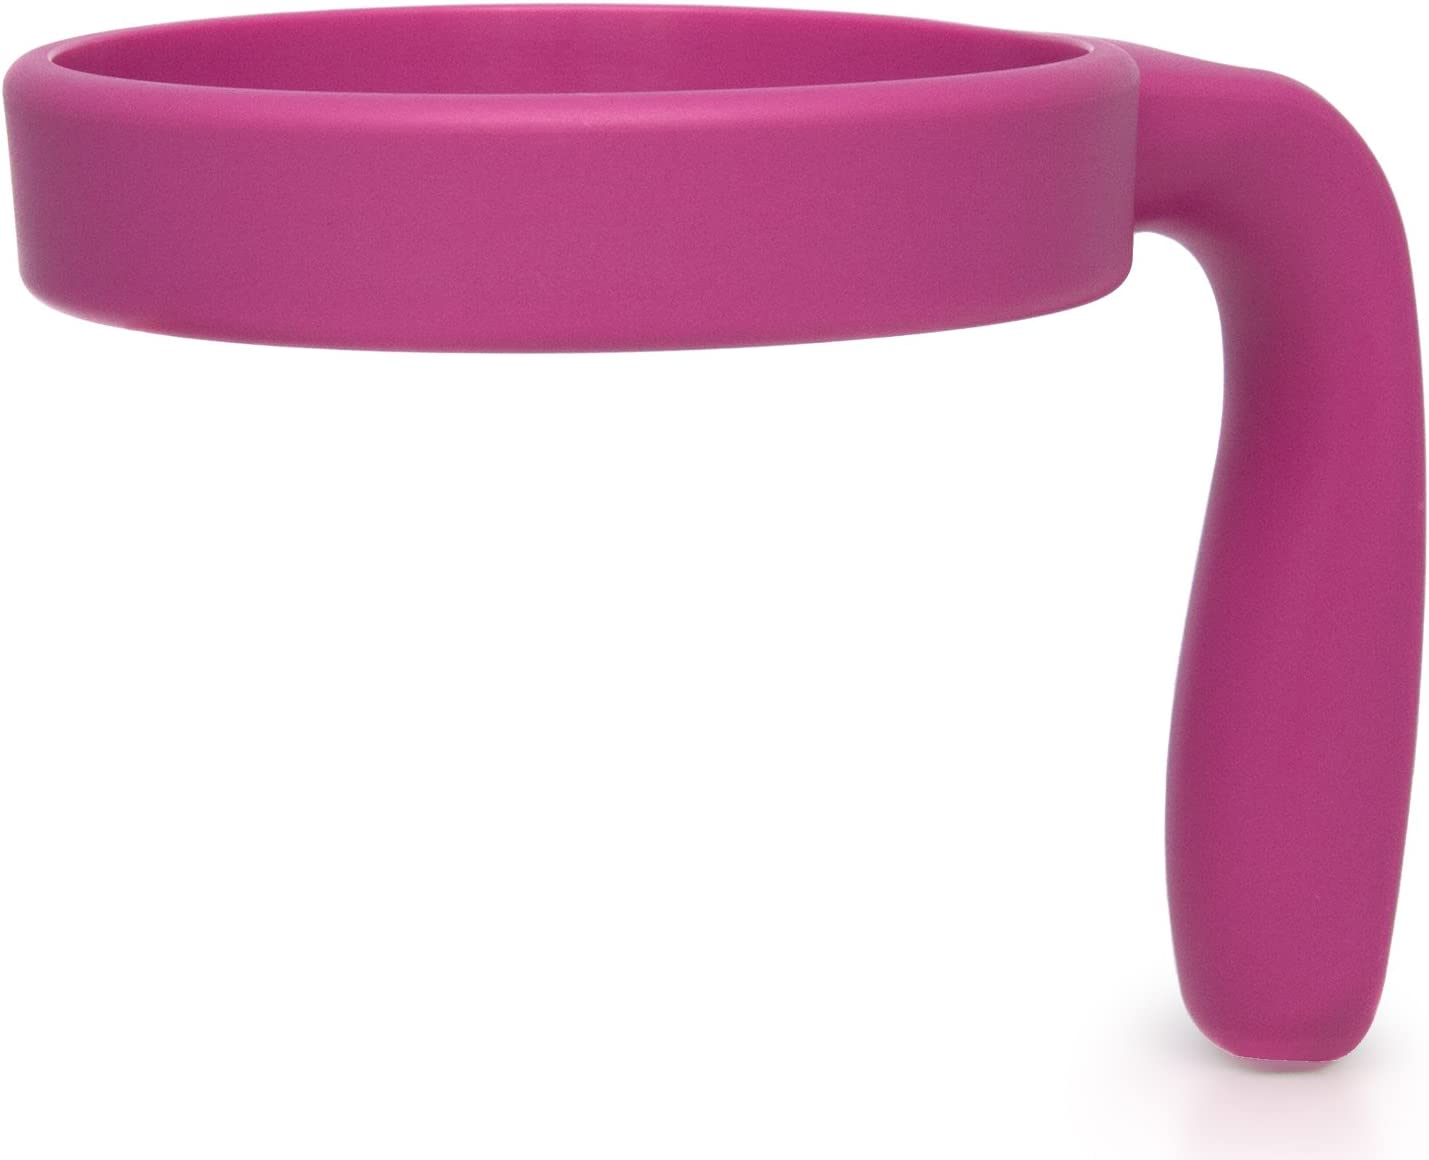 Simple Modern 30oz Cruiser Tumbler Handle - Use as a Travel Mug Coffee Cup - Tumbler not Included - Cotton Candy Pink